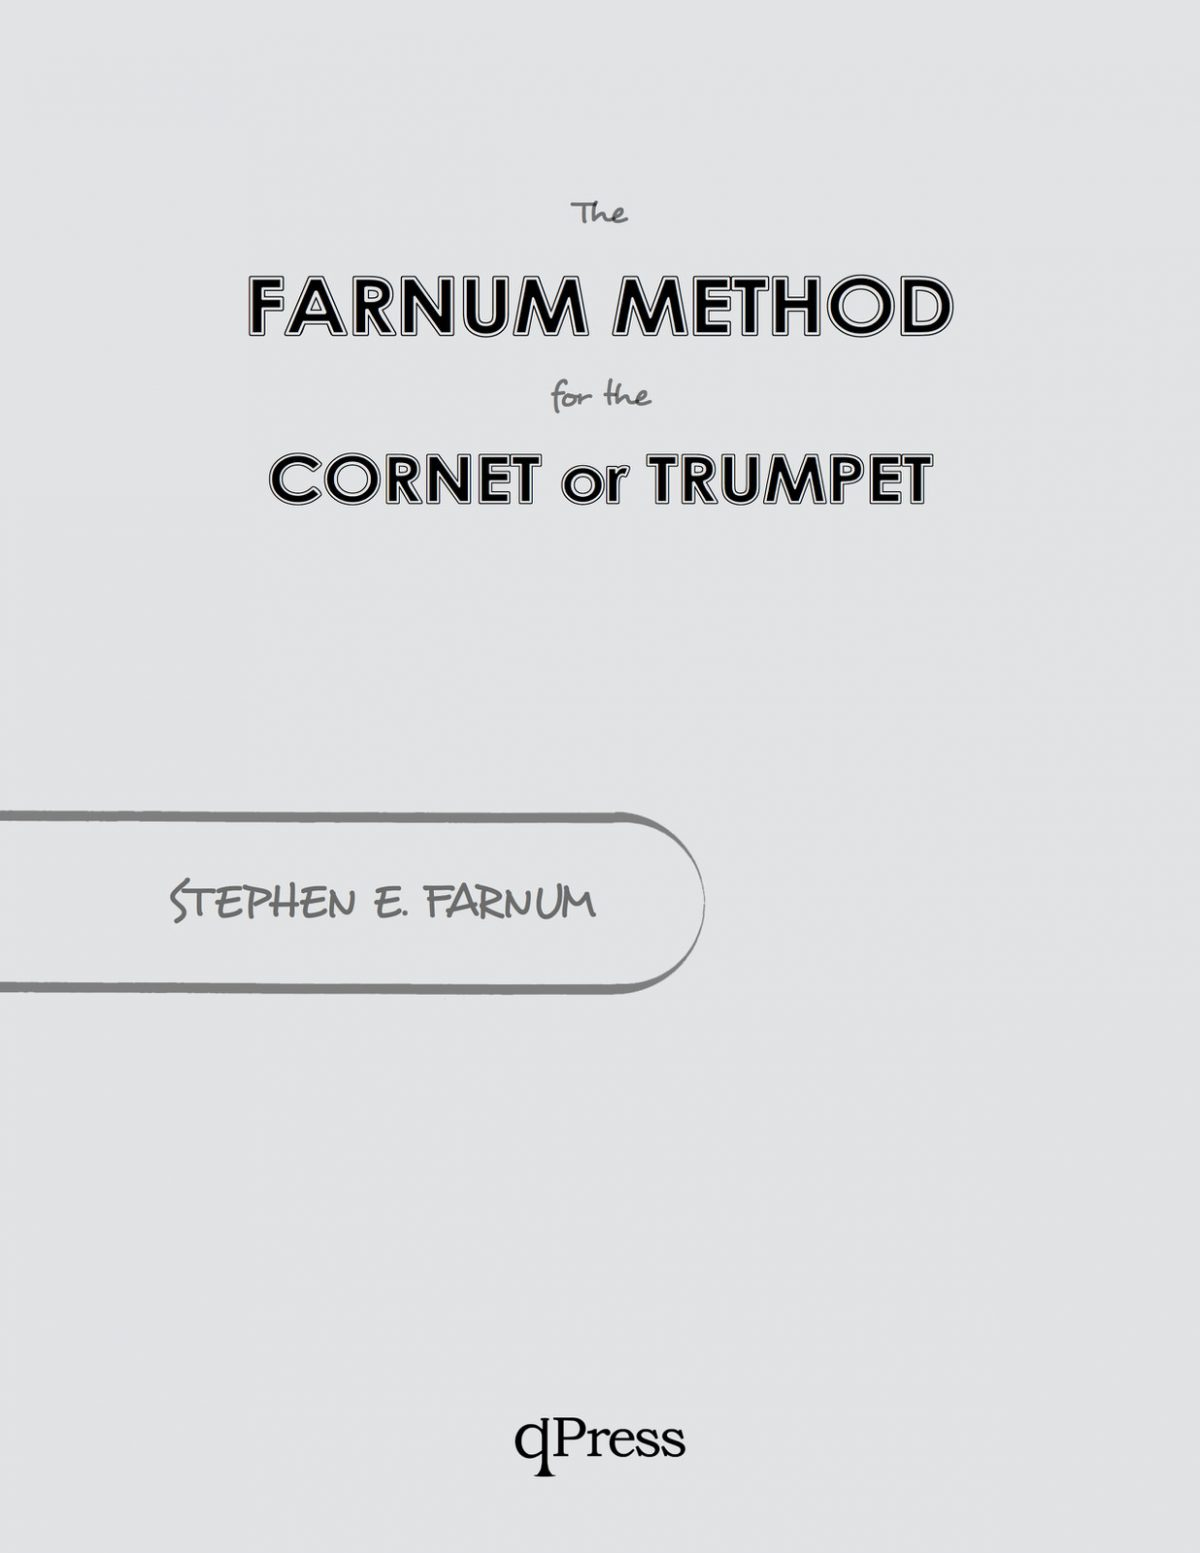 Farnum, Stephen E, The Farnum Method for the Cornet or Trumpet-1